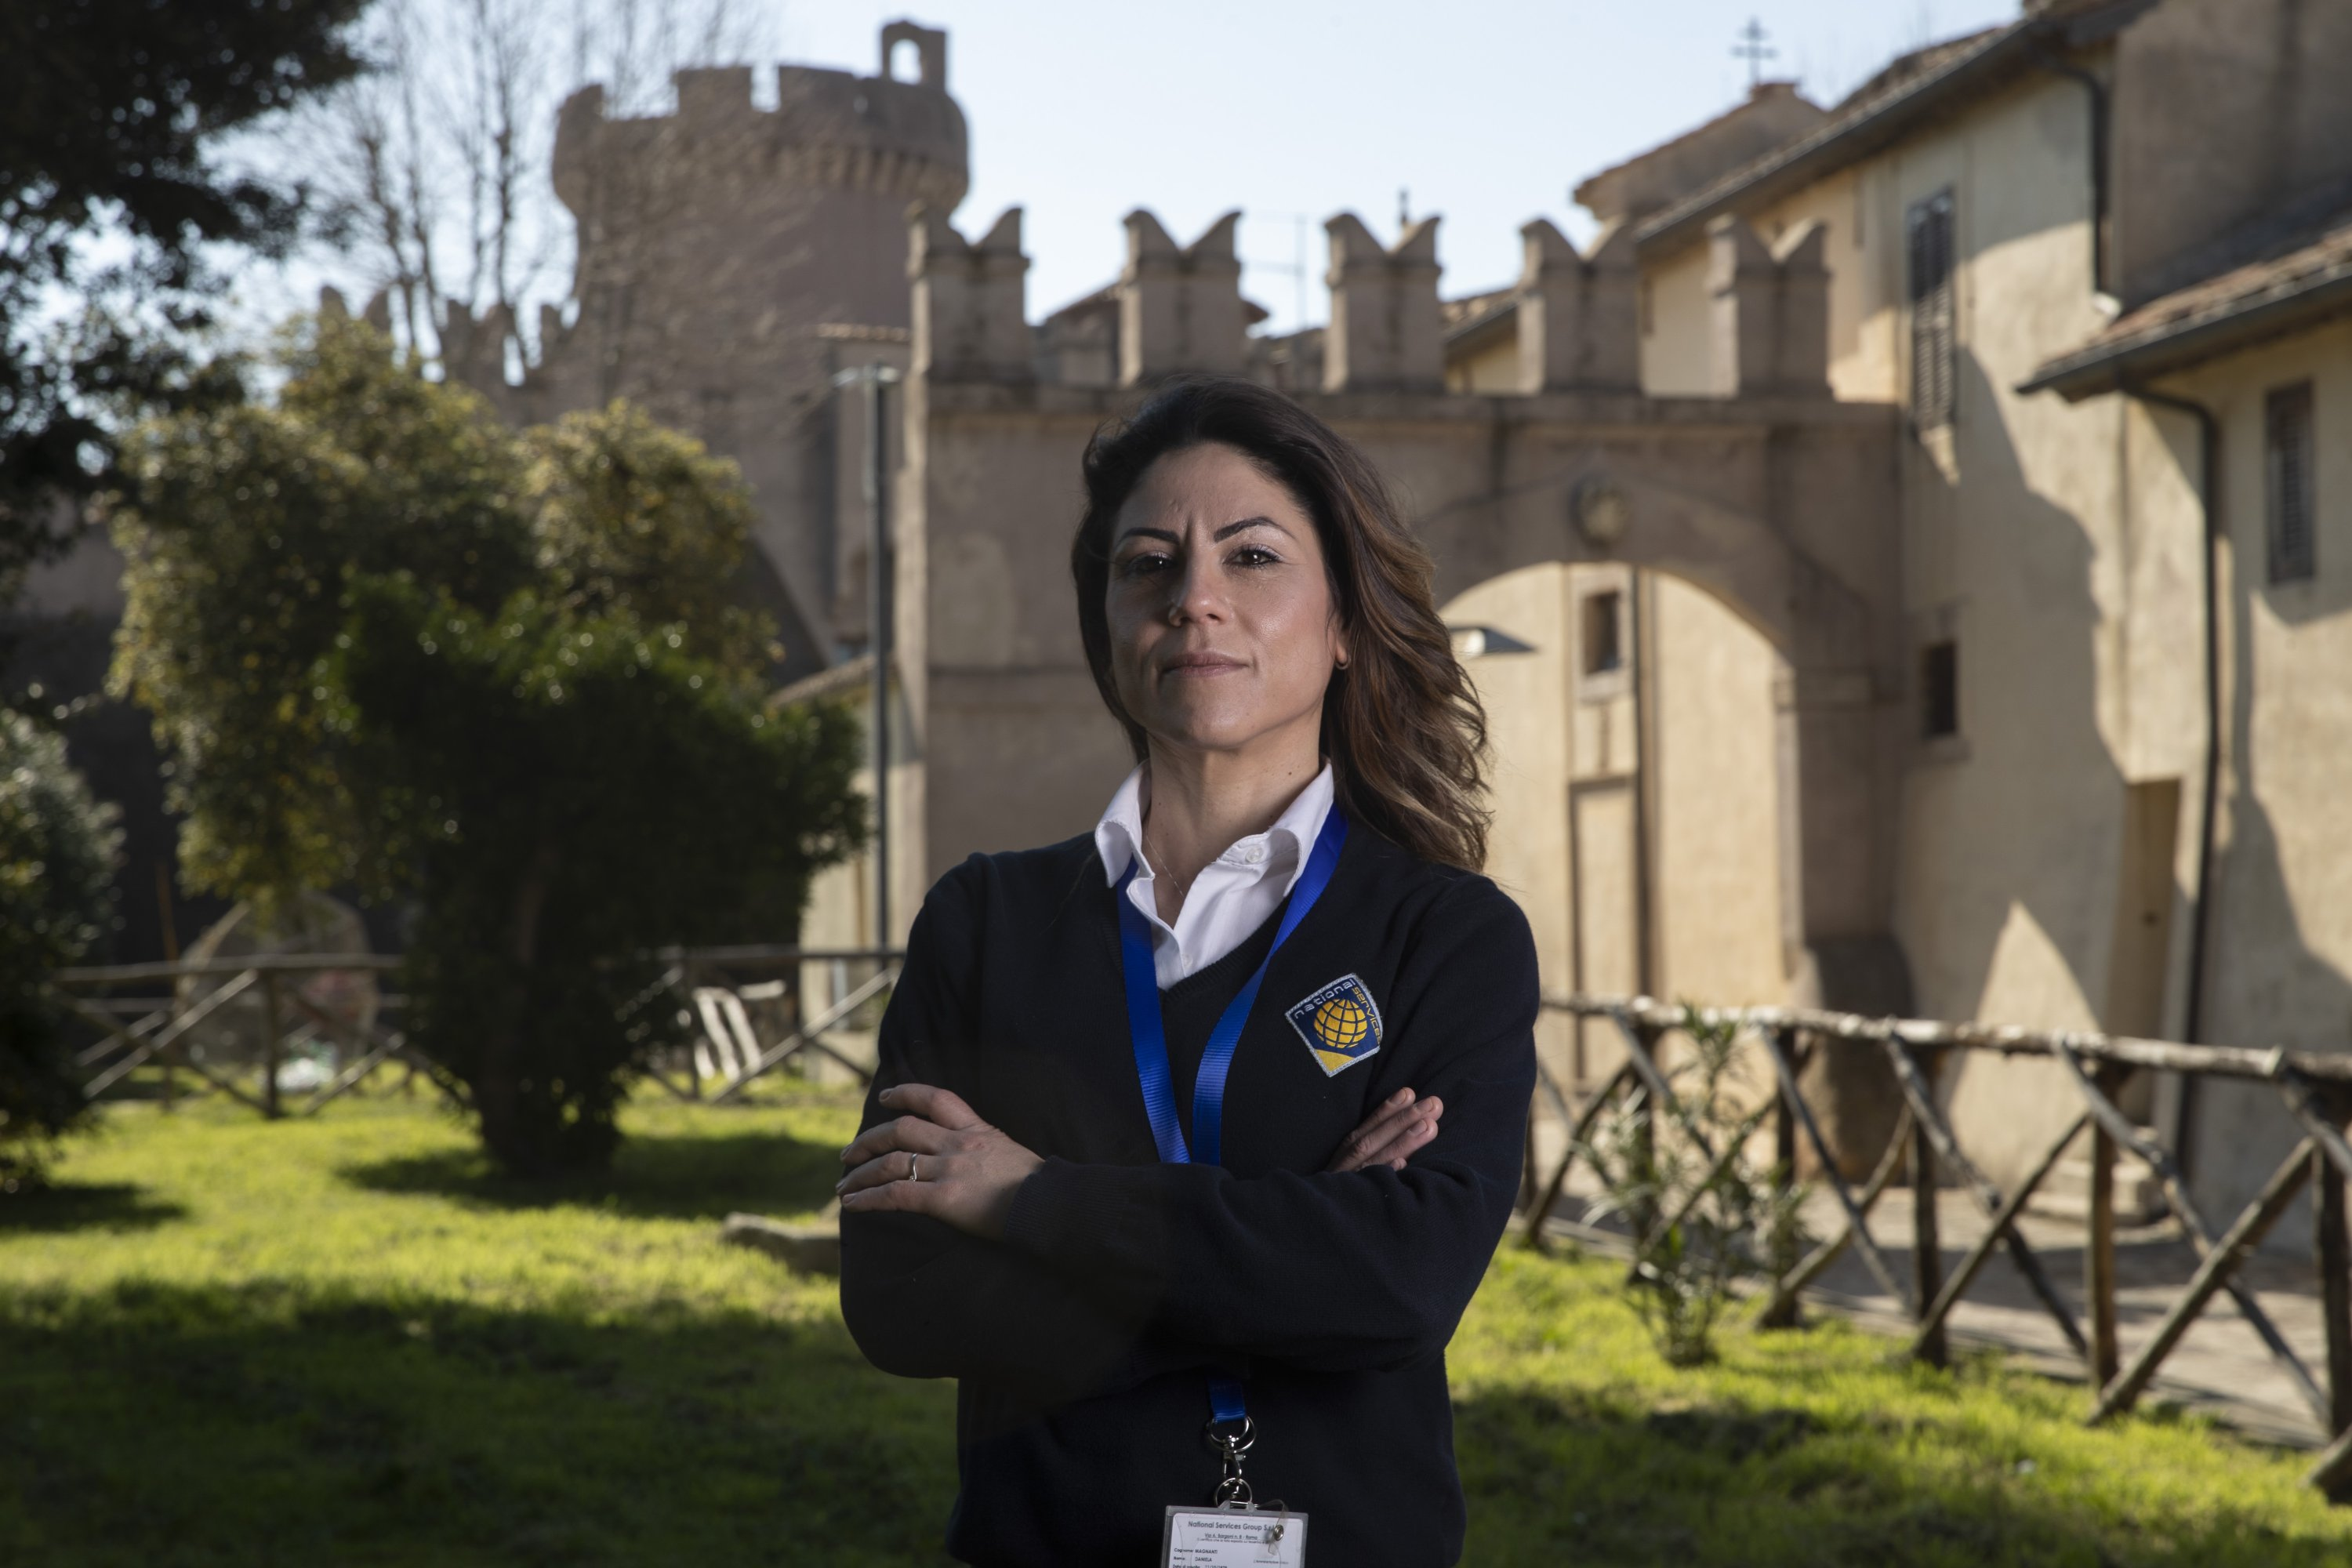 Daniela Magnanti poses in front of the Santa Severa castle where she has a part-time work at the check-in desk of a hotel that opened in the castle, Rome, Italy, March 5, 2021. (AP Photo)